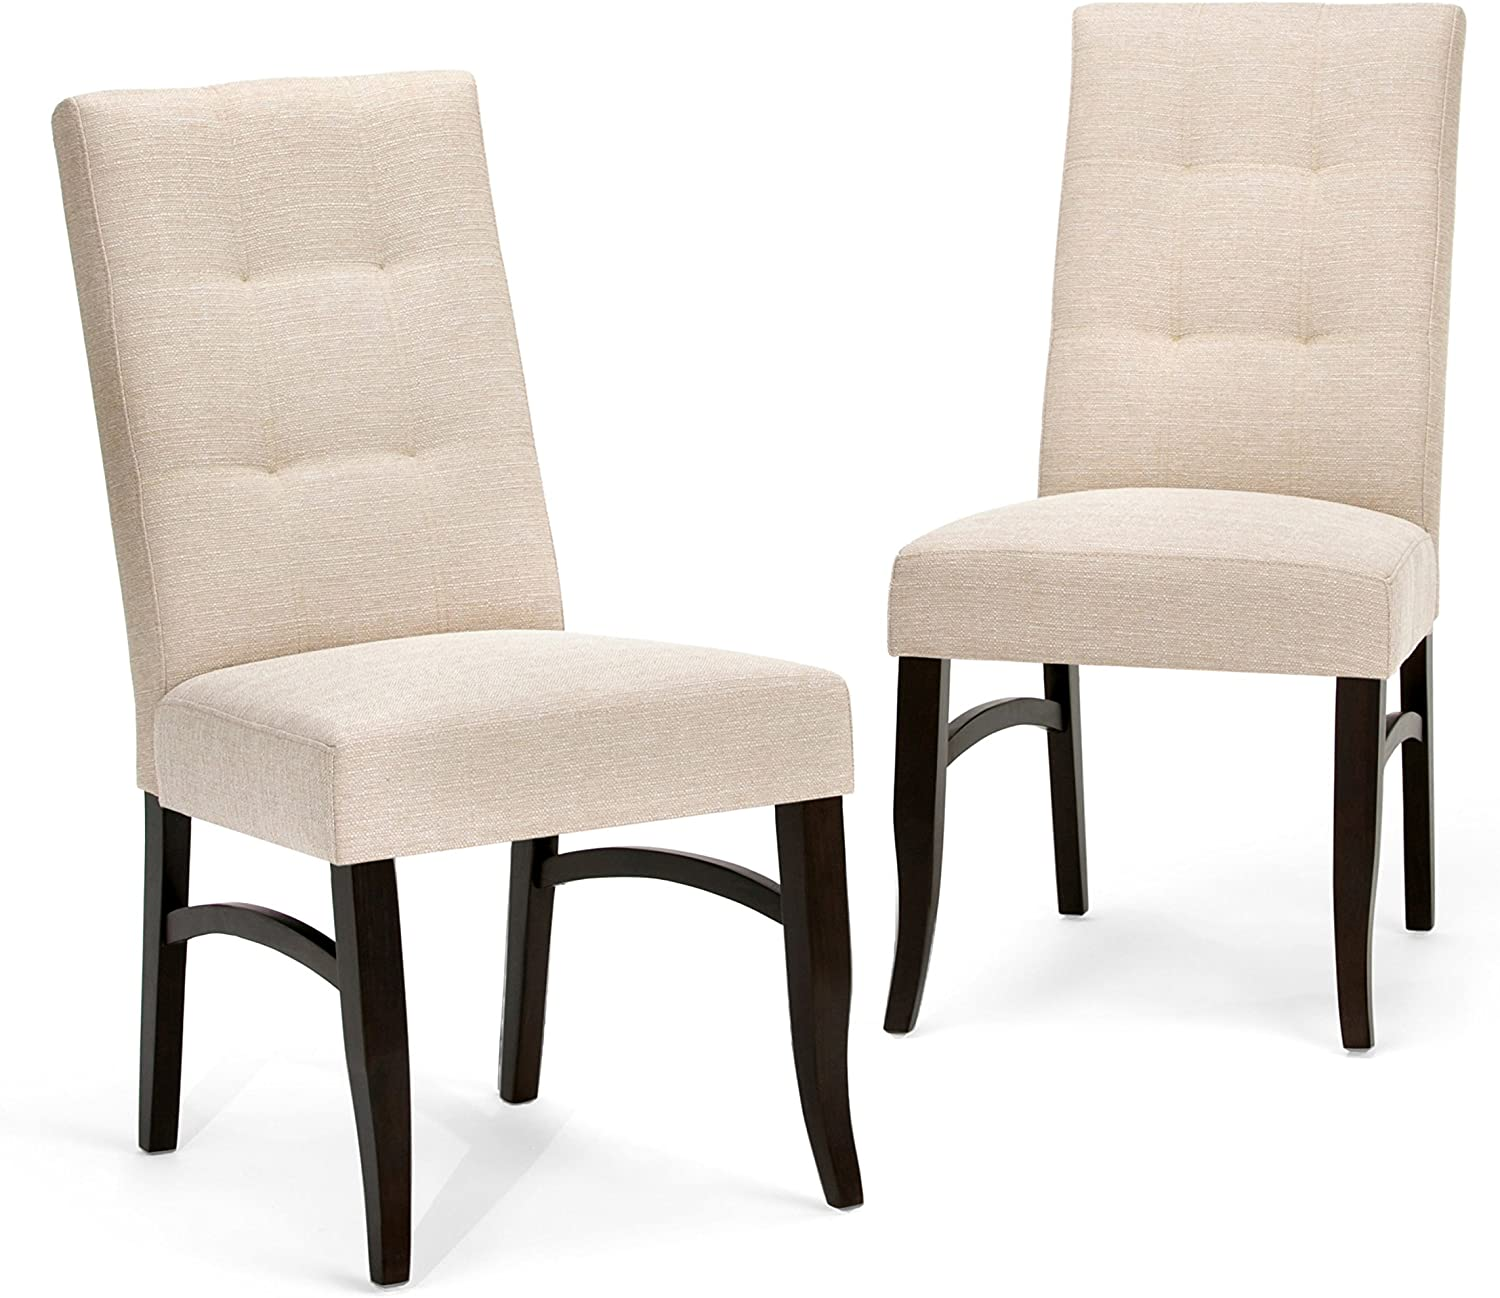 SIMPLIHOME Ezra Contemporary Deluxe Dining Chair (Set of 2) in Natural Linen Look Fabric